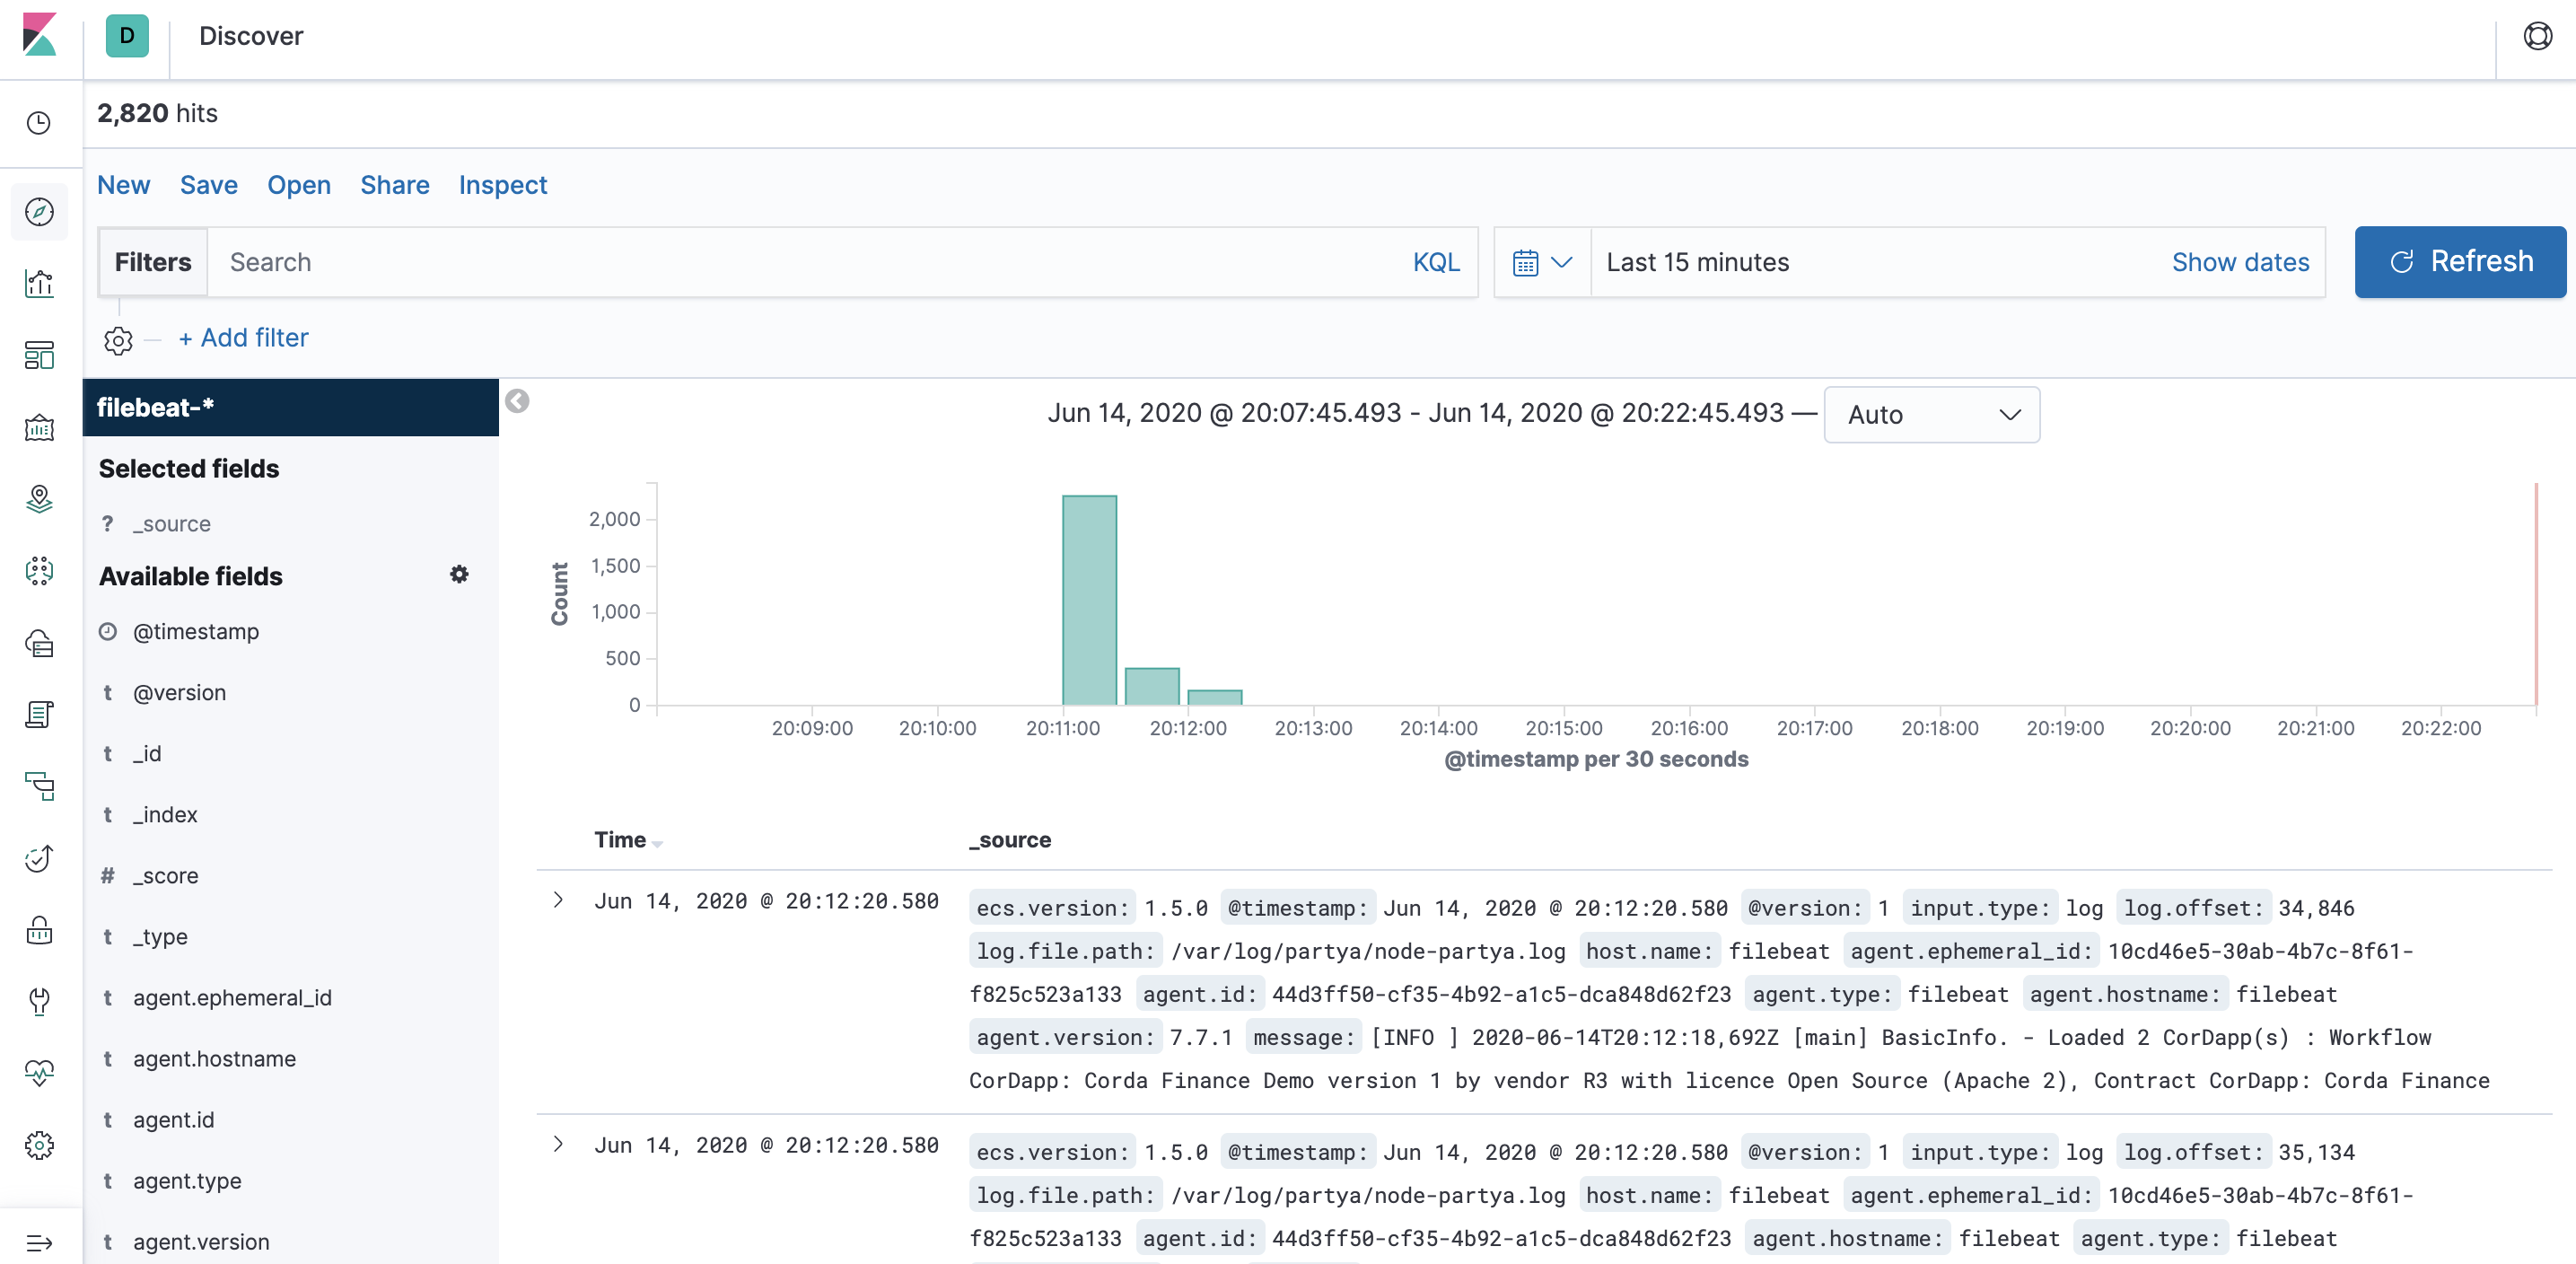 Kibana Discover viewing log files from Corda nodes